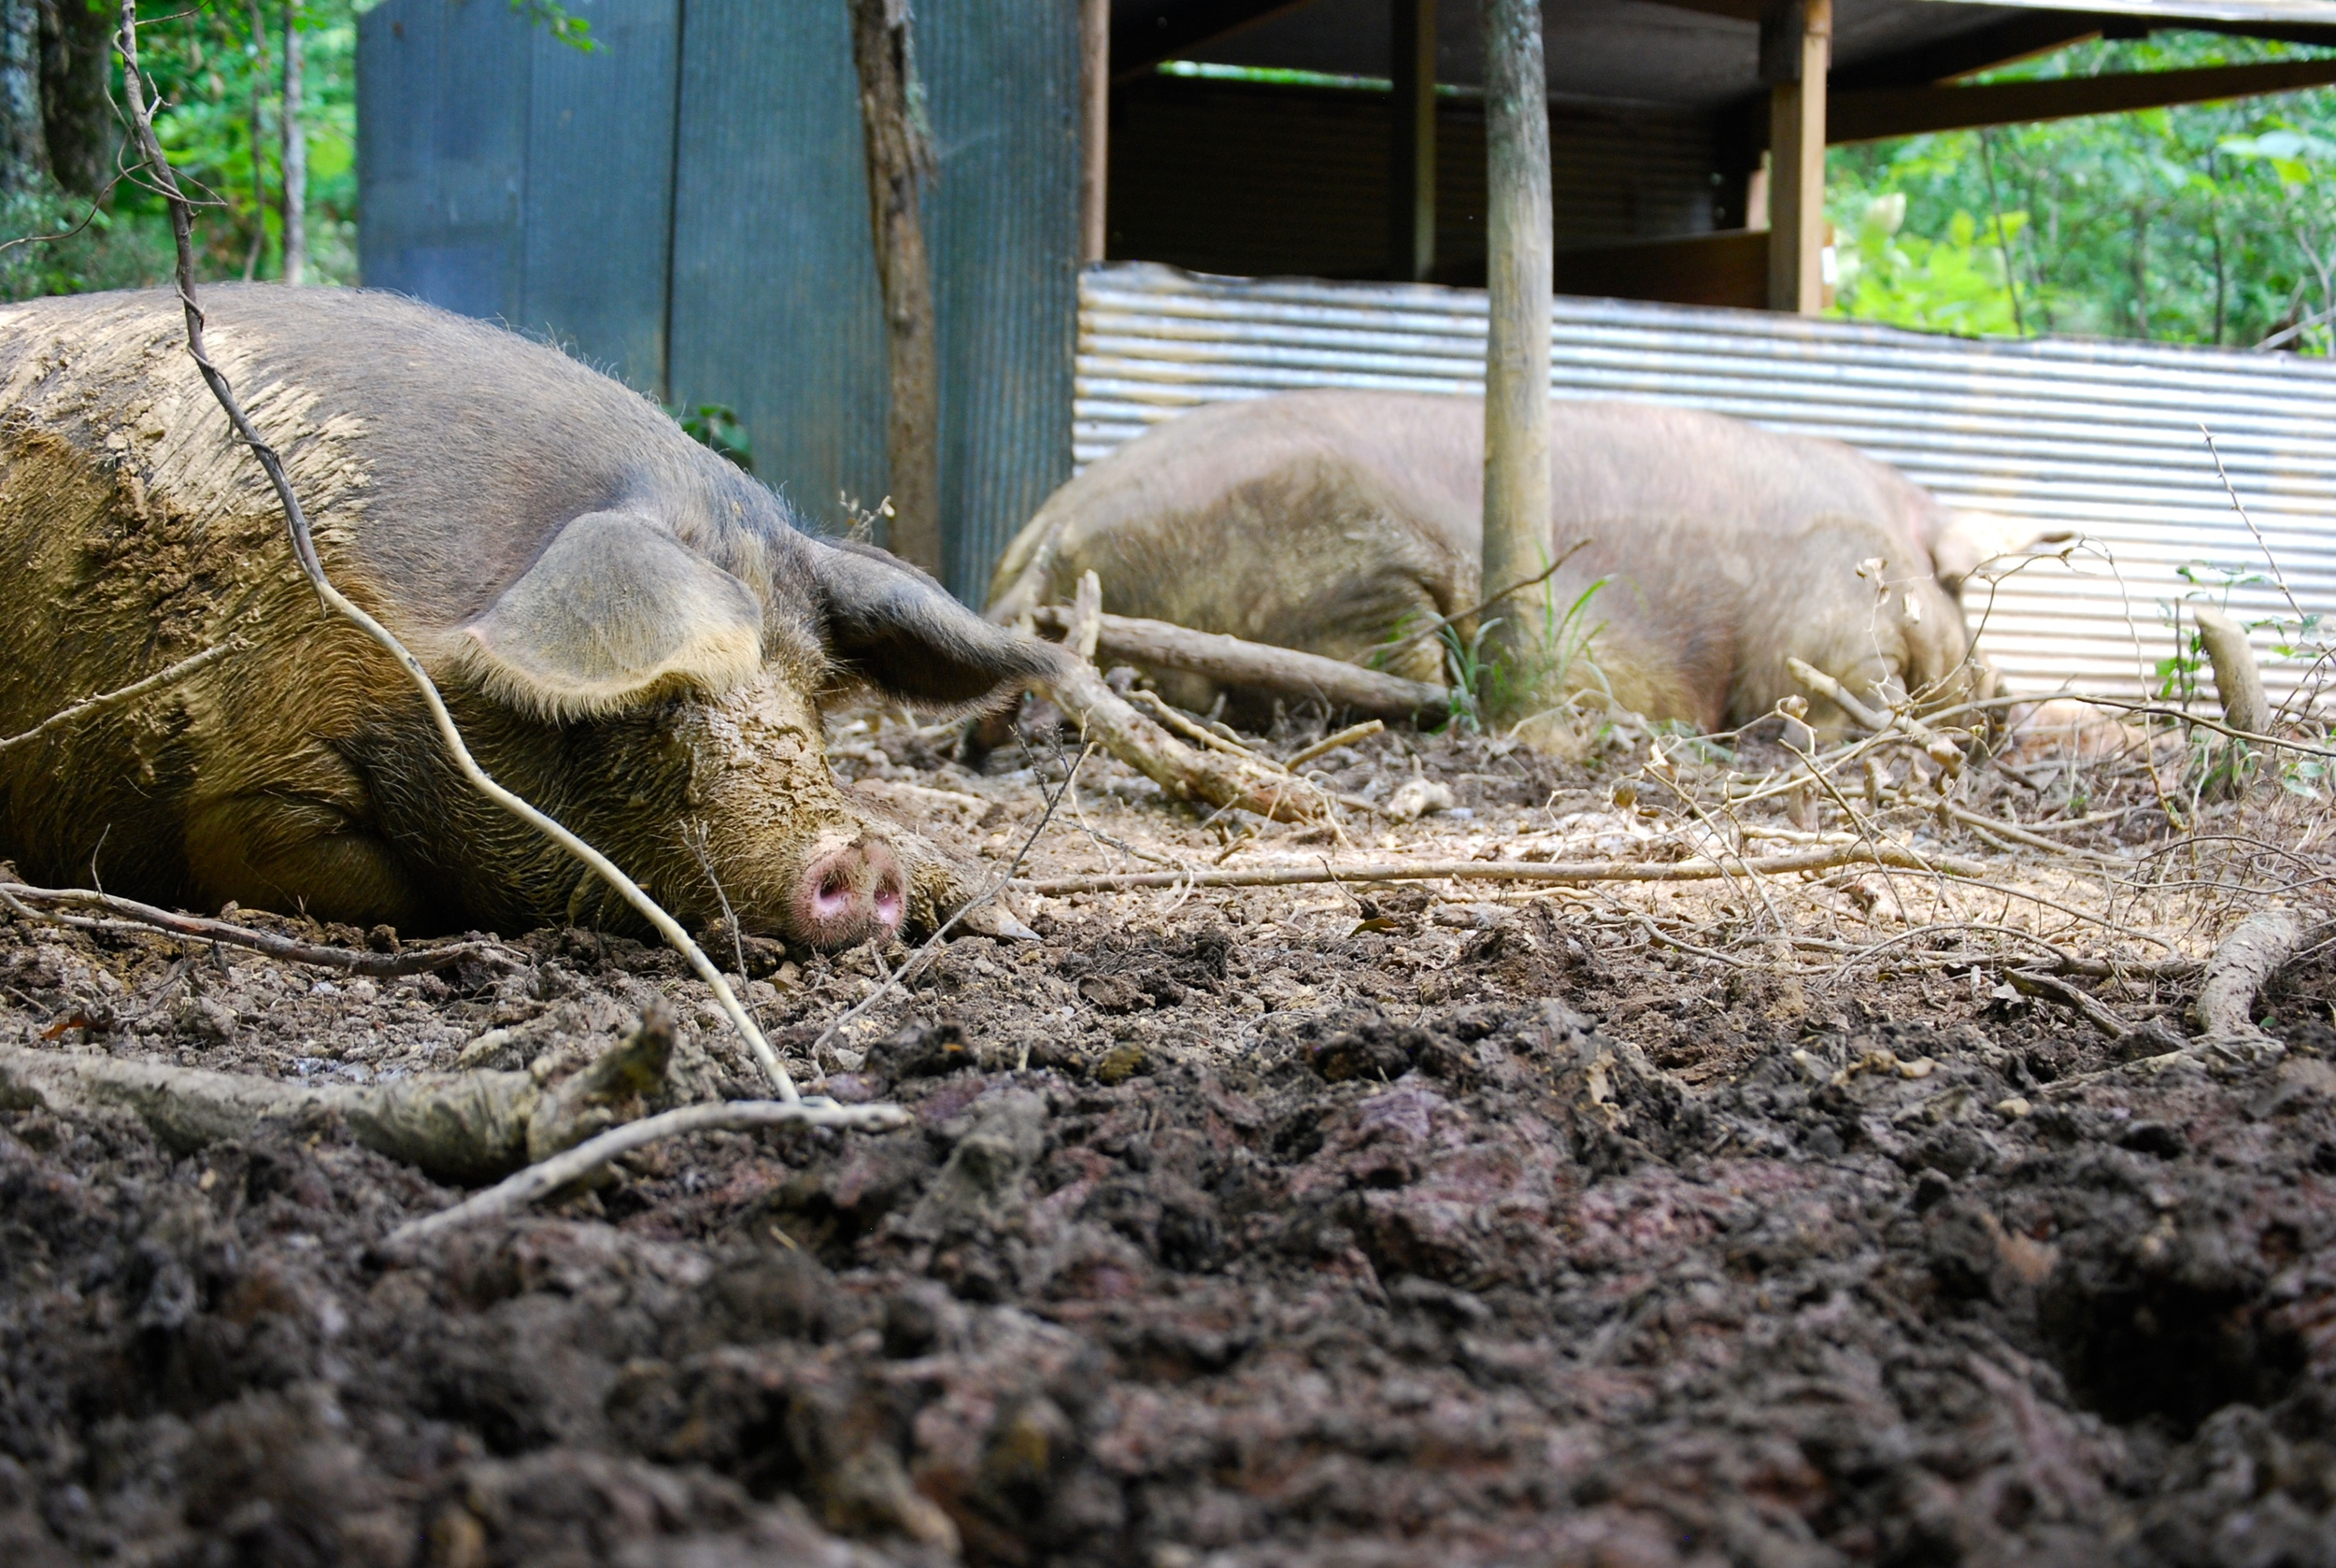 heavily pregnant sows near their farrowing houses